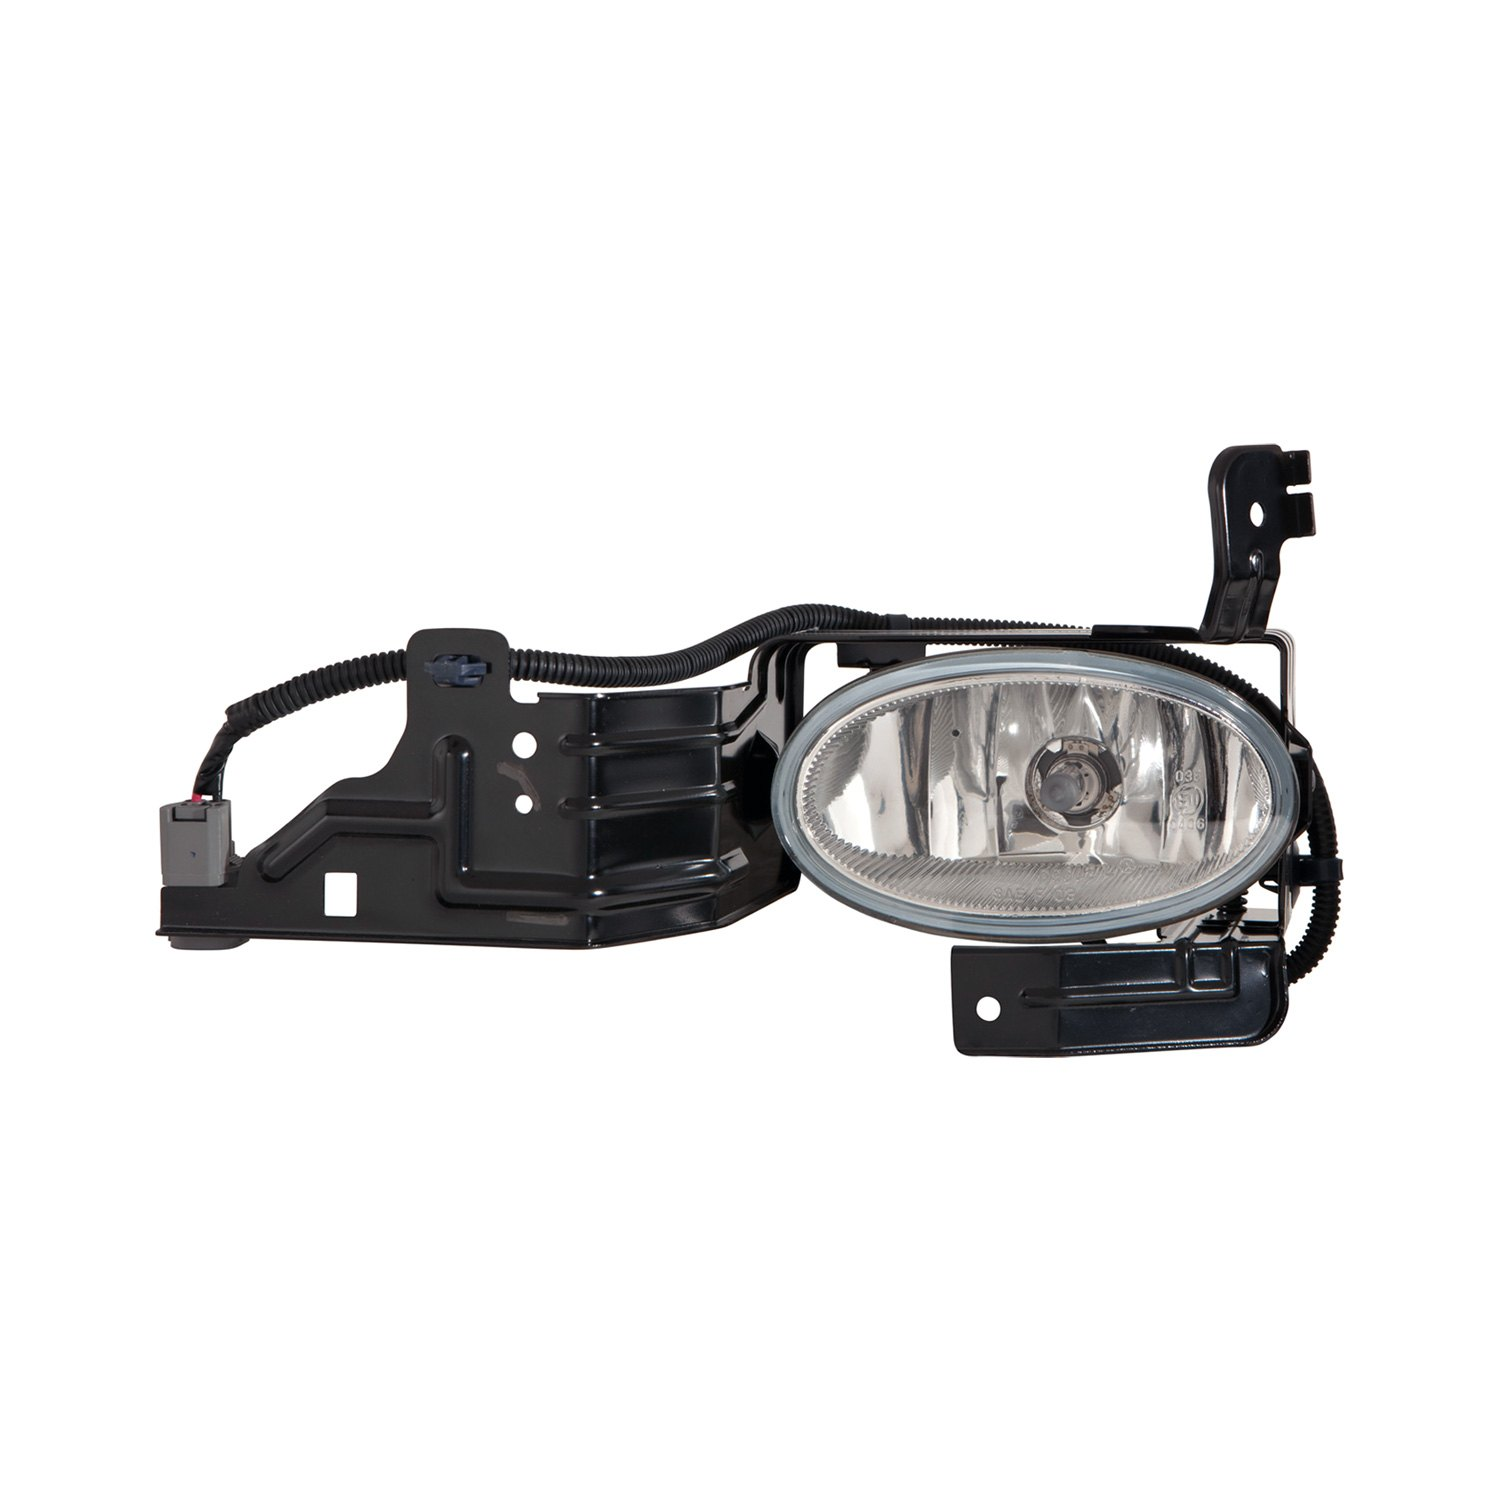 Replace honda accord 2011 replacement fog light - Honda accord interior light bulb replacement ...